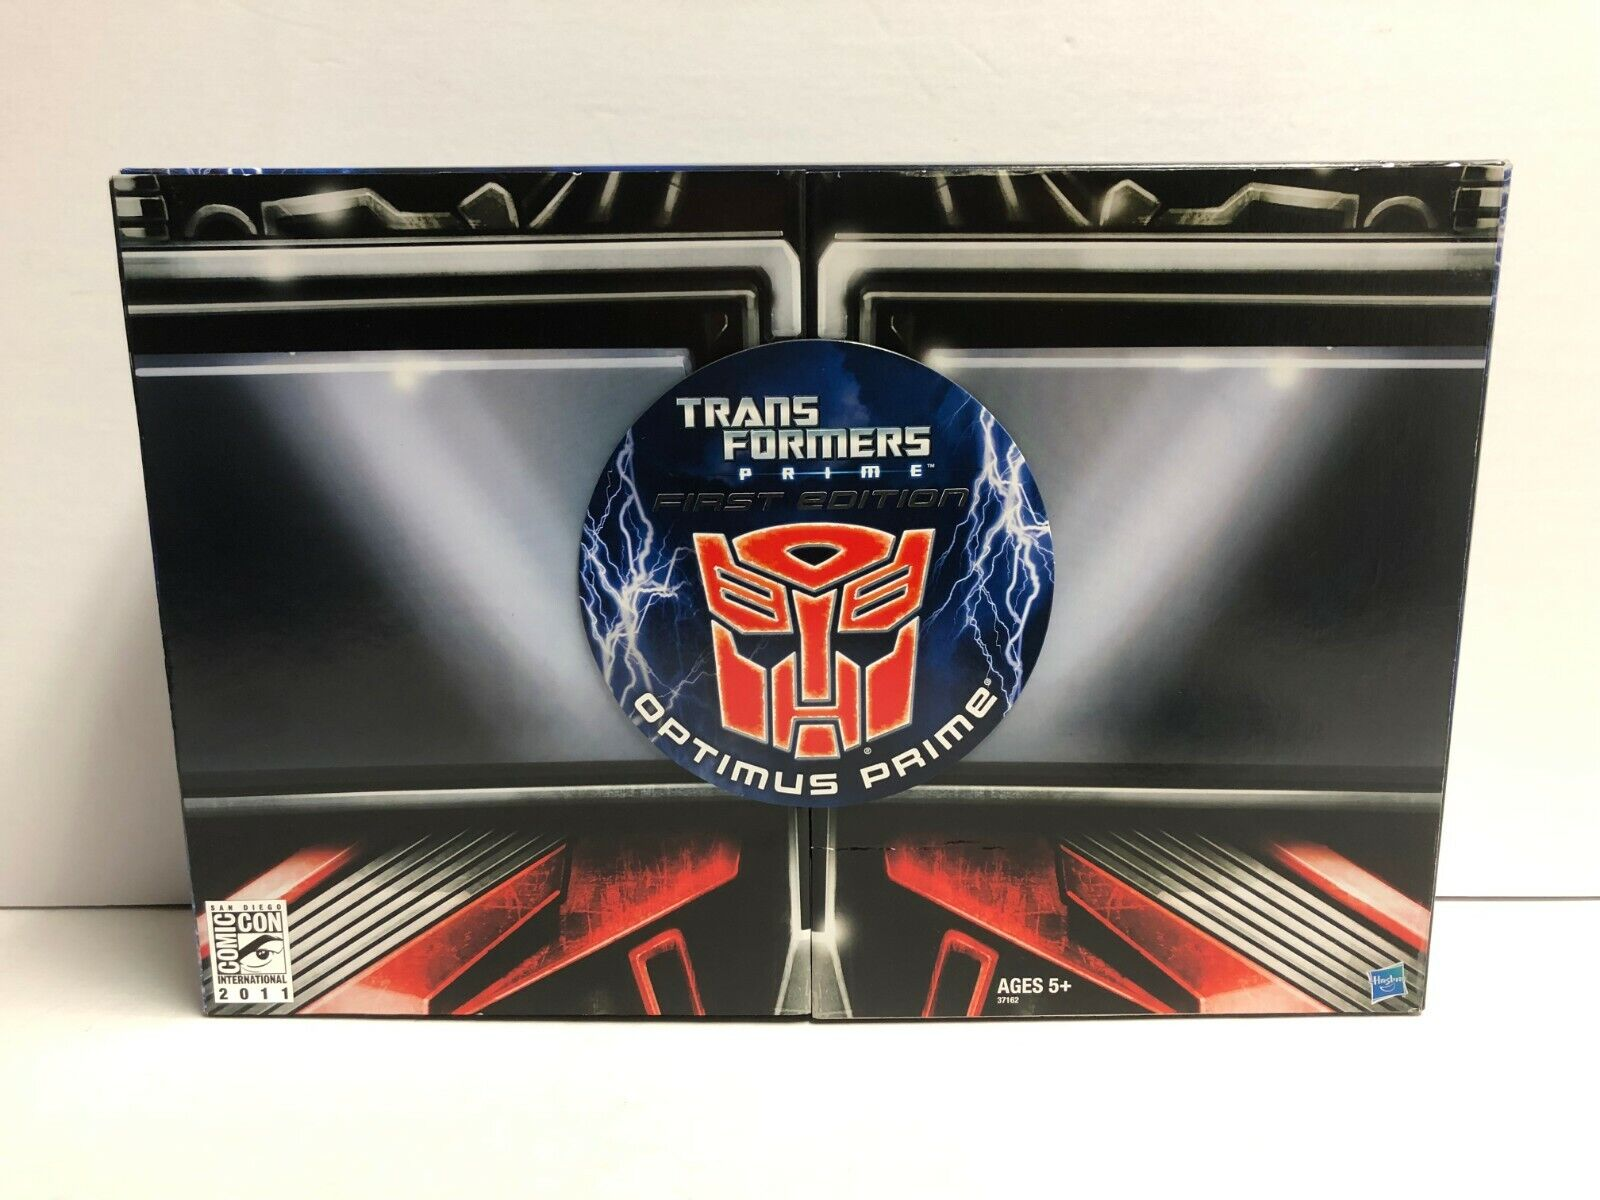 SDCC EXCLUSIVE 2011 Hasbro Transformers Prime First Edition OPTIMUS PRIME